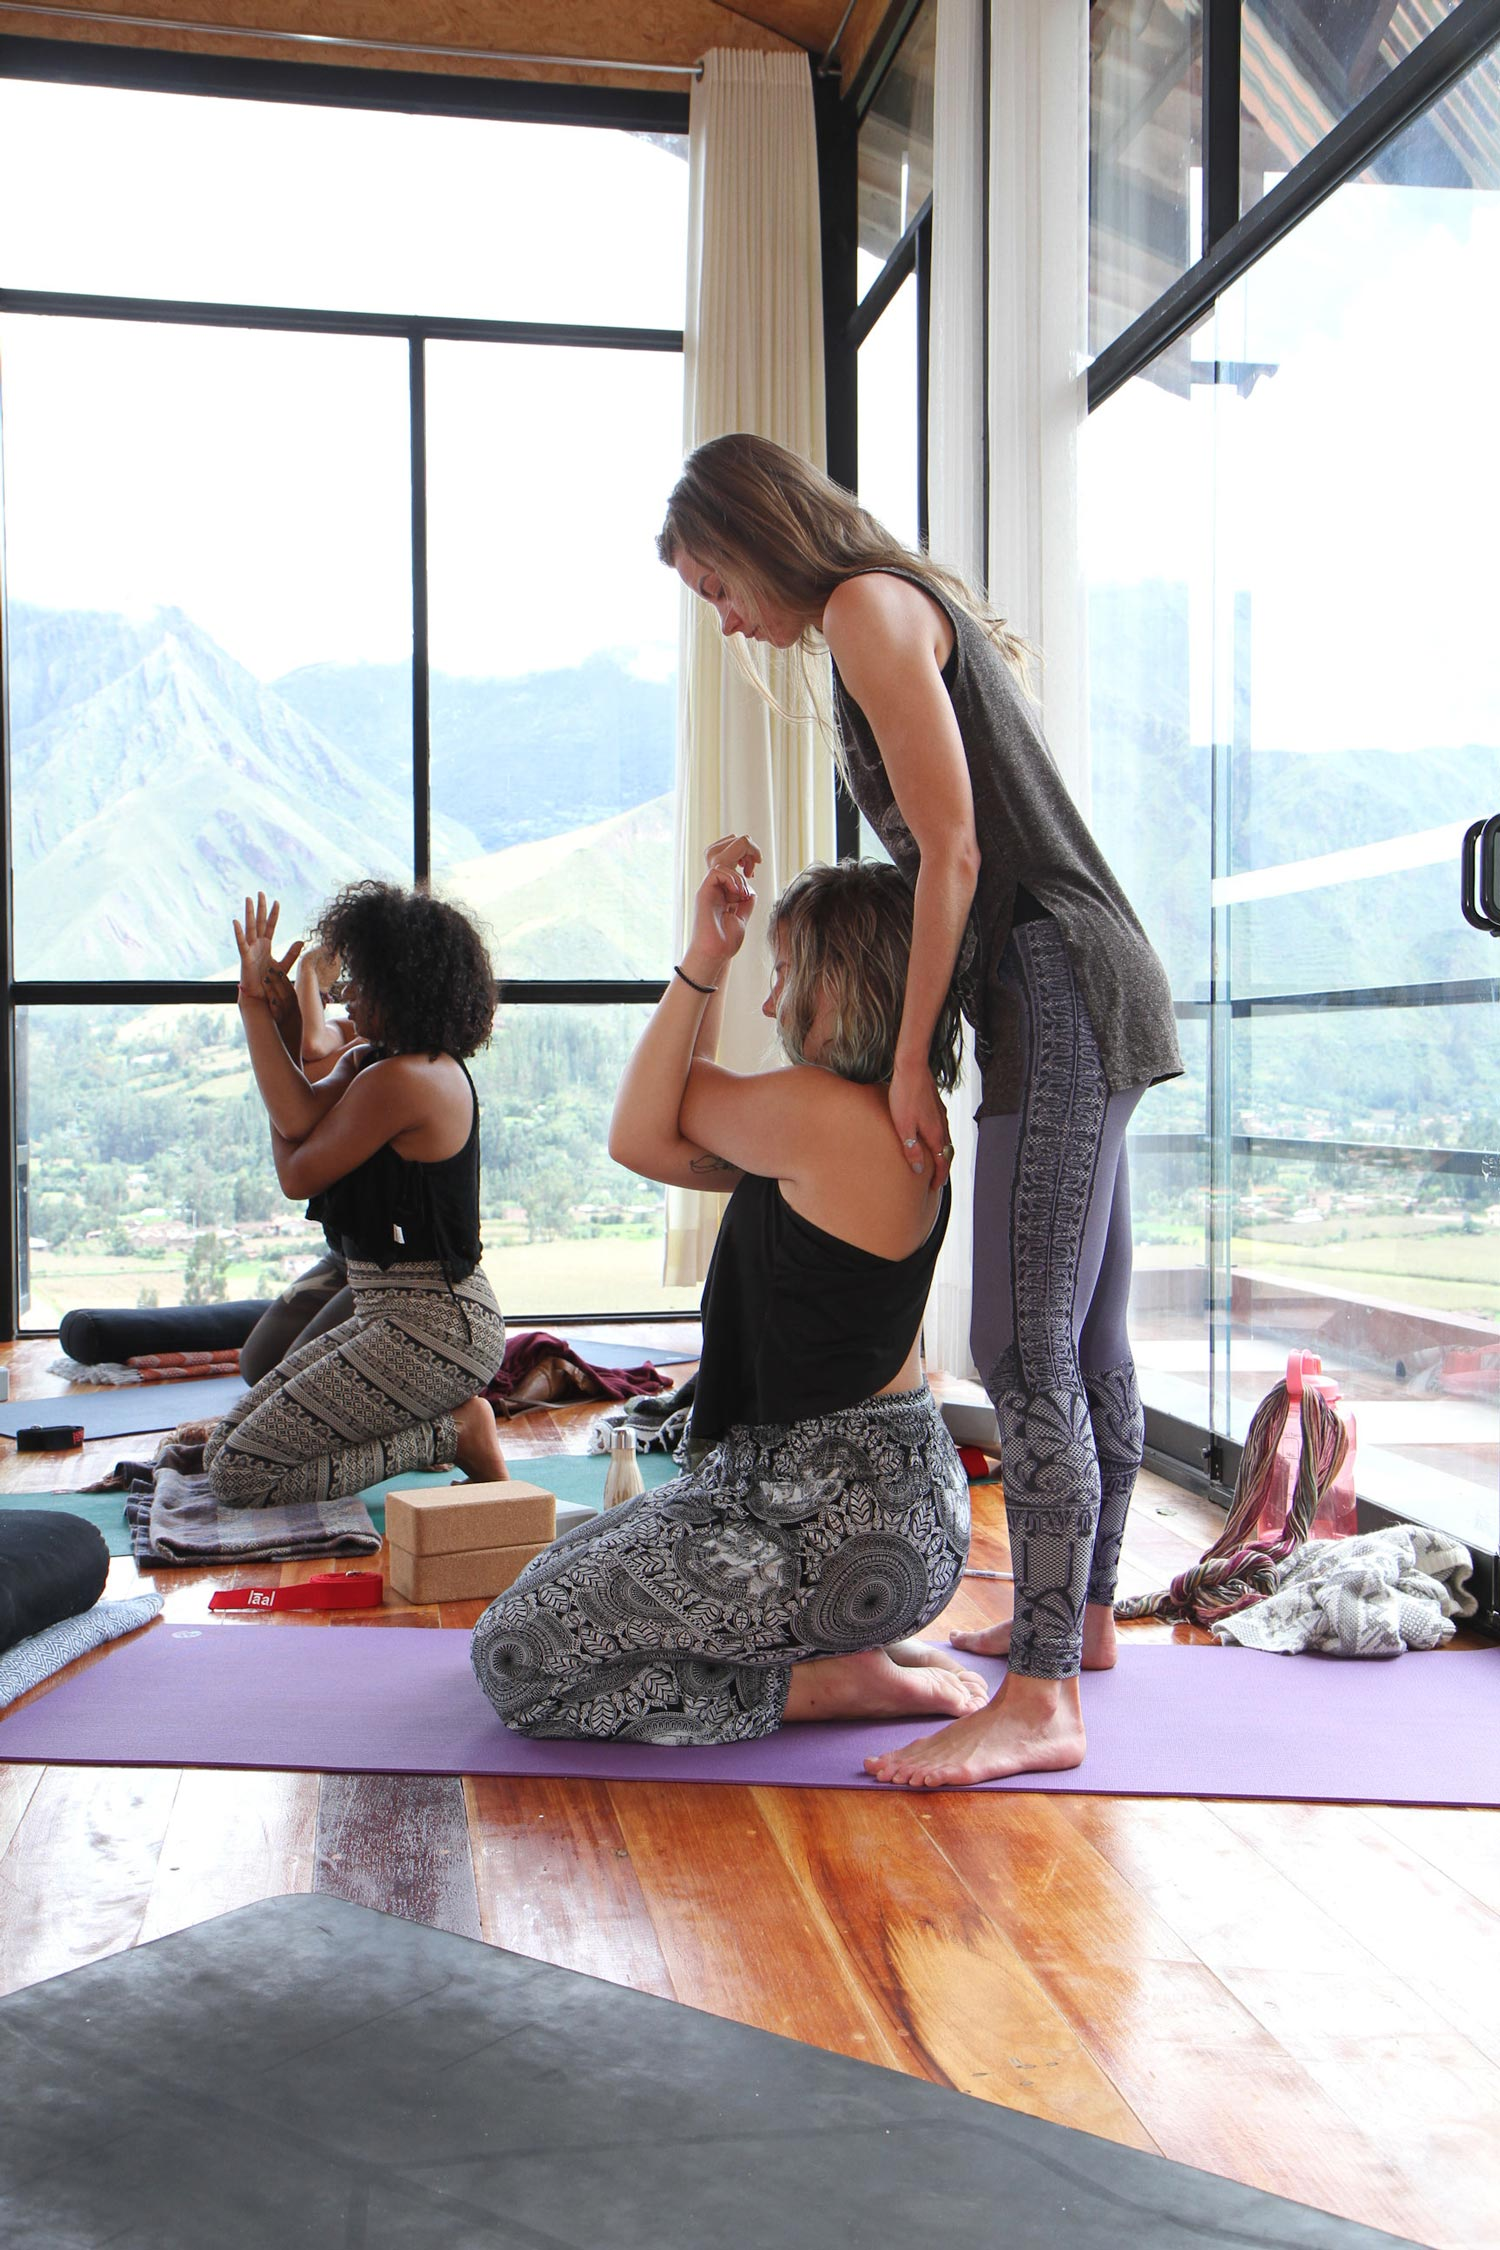 durga-excursions-yin-yoga-teacher-training-peru-2020-9.jpg